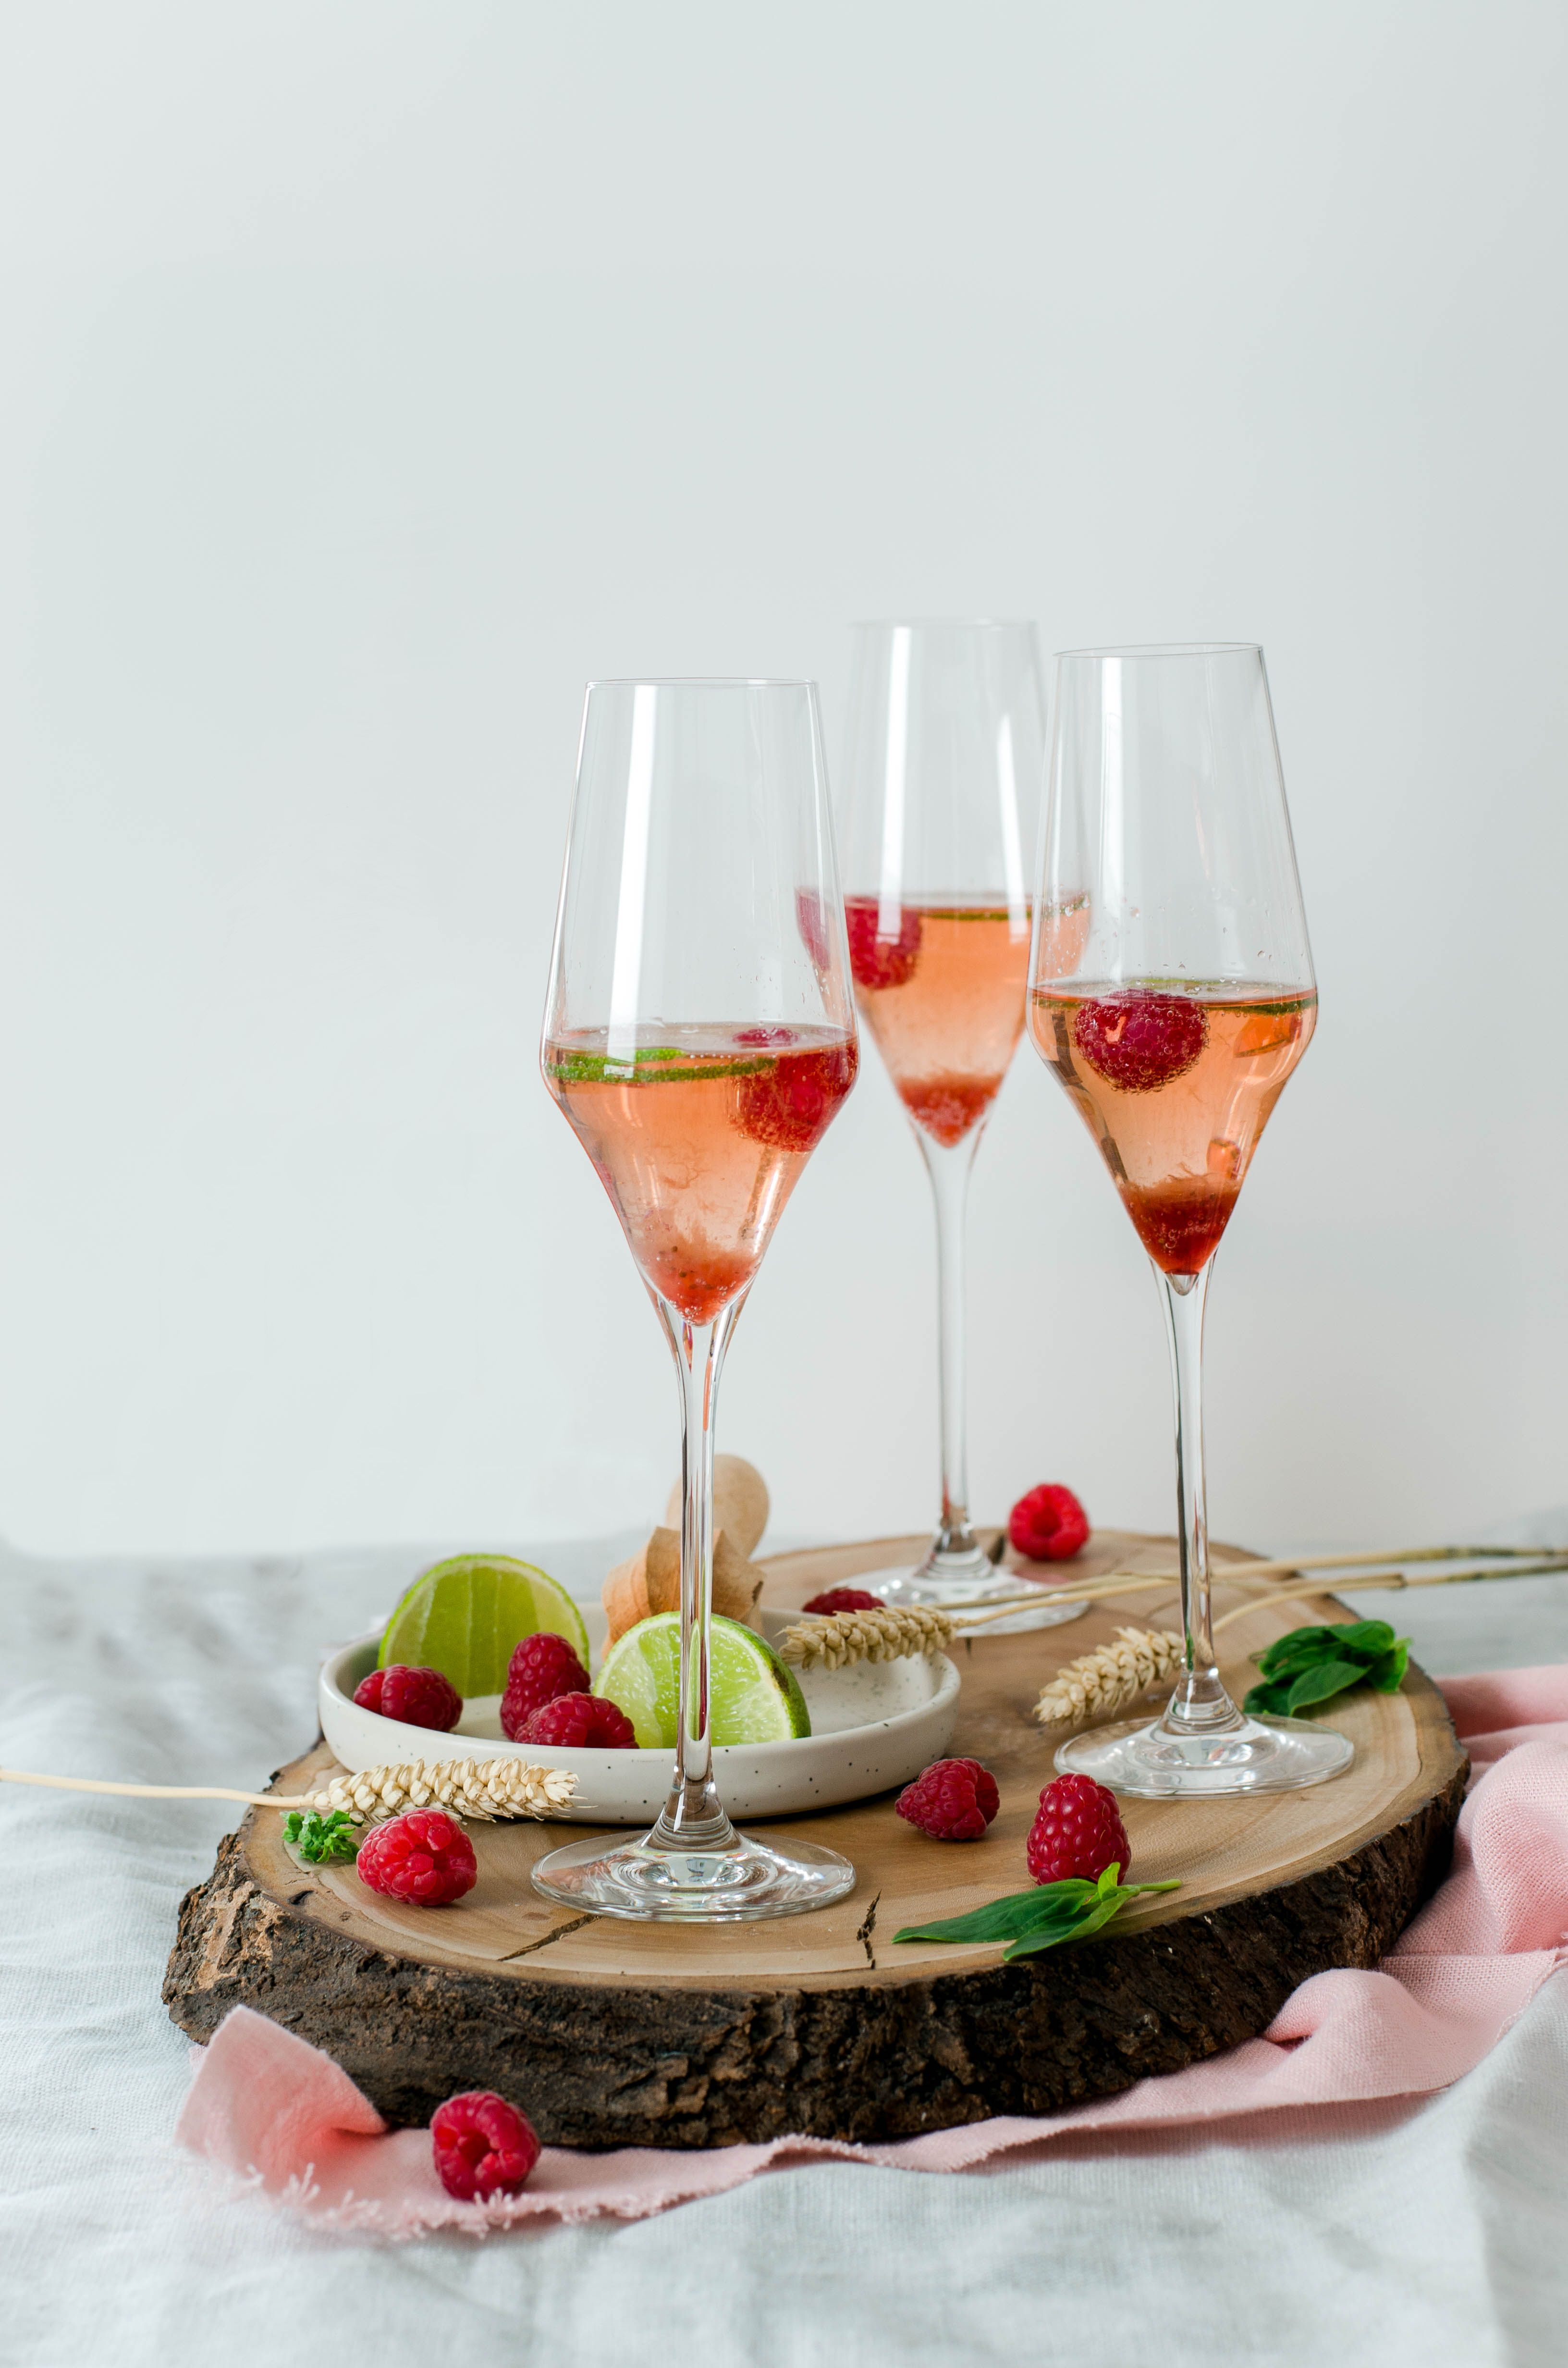 Cocktail rosé à la framboise